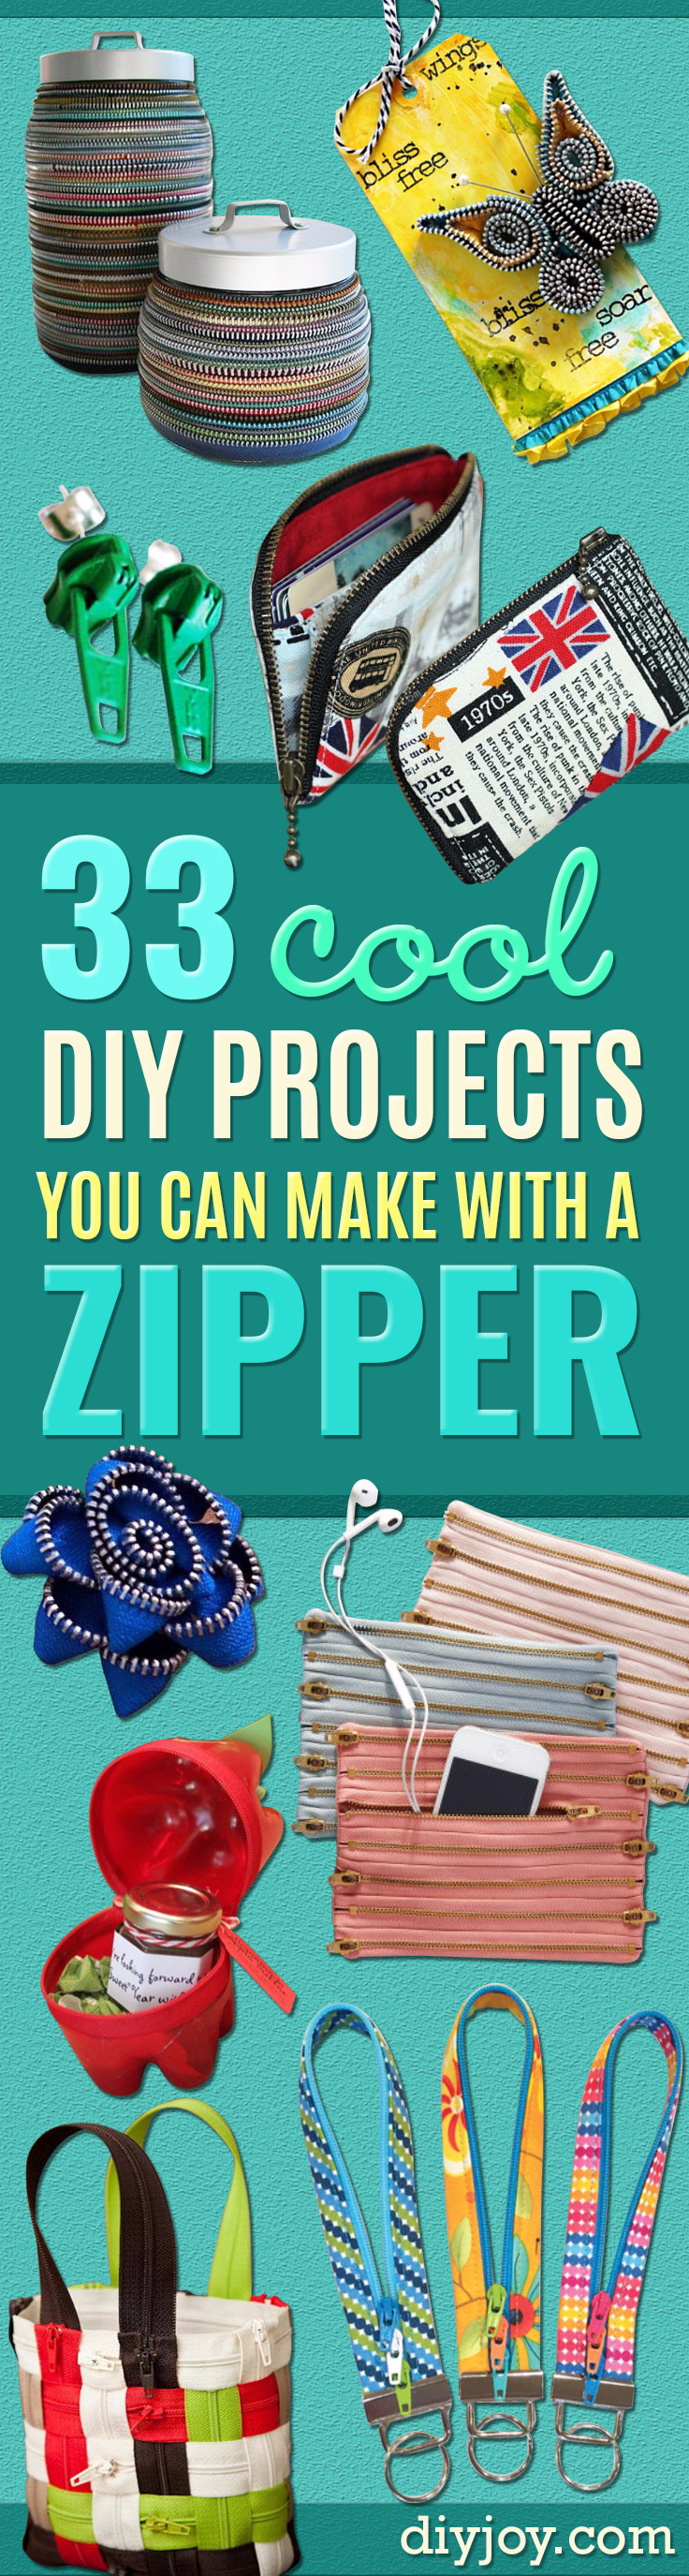 Creative DIY Projects With Zippers - Easy   Crafts and Fashion Ideas With A Zipper - Jewelry, Home Decor,   School Supplies and DIY Gift Ideas - Quick DIYs for Fun Weekend   Projects http://diyjoy.com/diy-projects-zippers